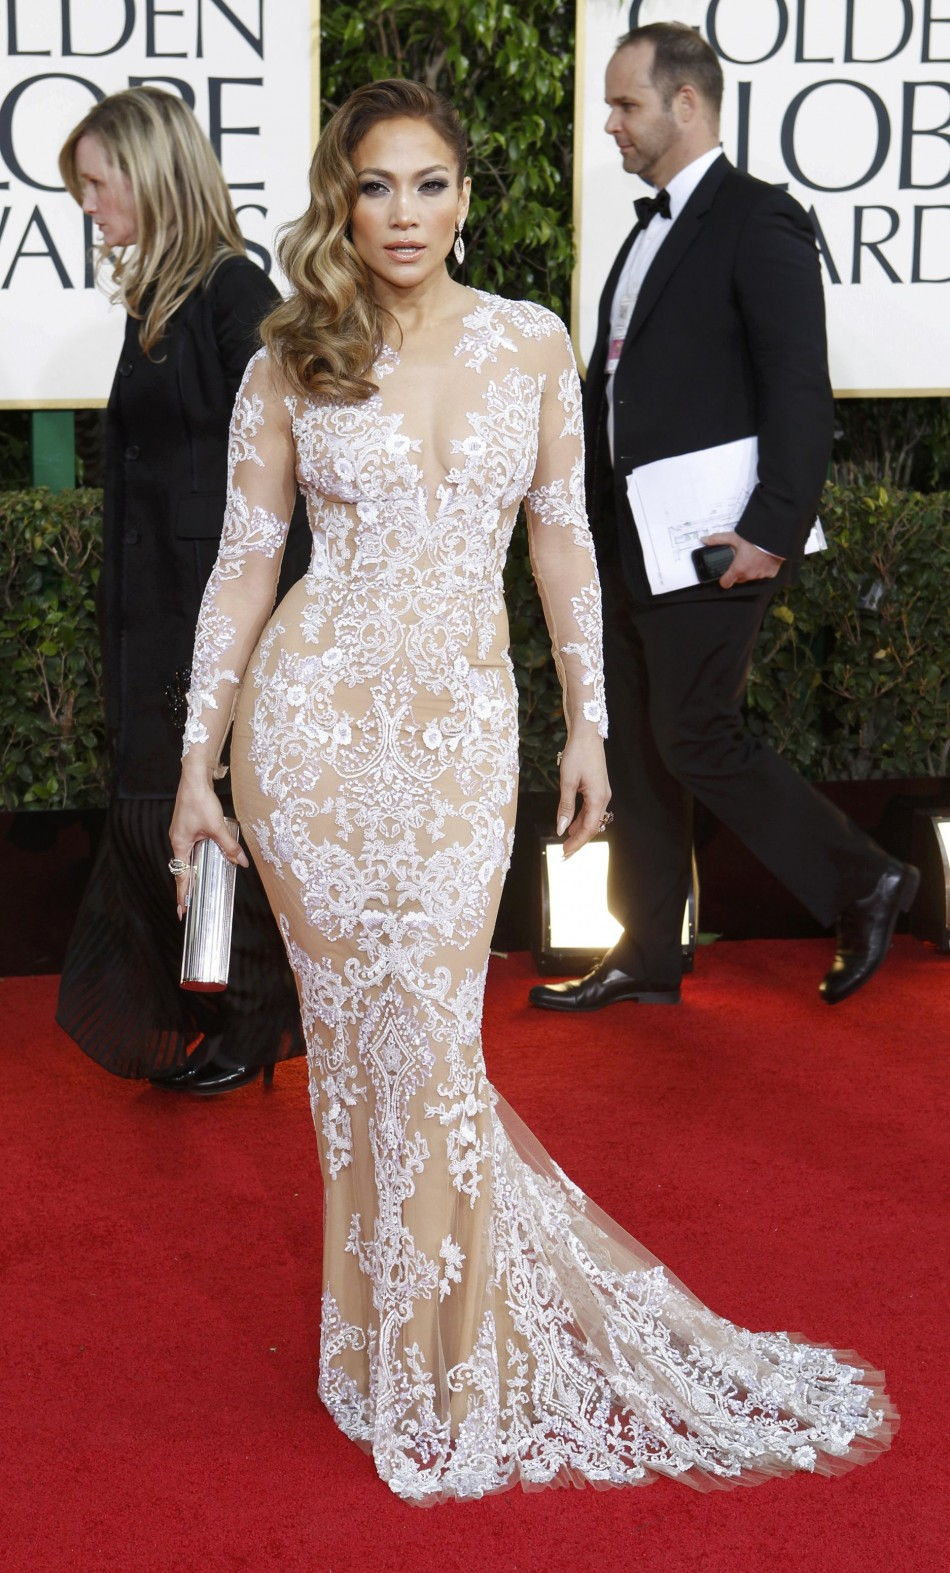 Singer Jennifer Lopez arrives at the 70th annual Golden Globe Awards in Beverly Hills